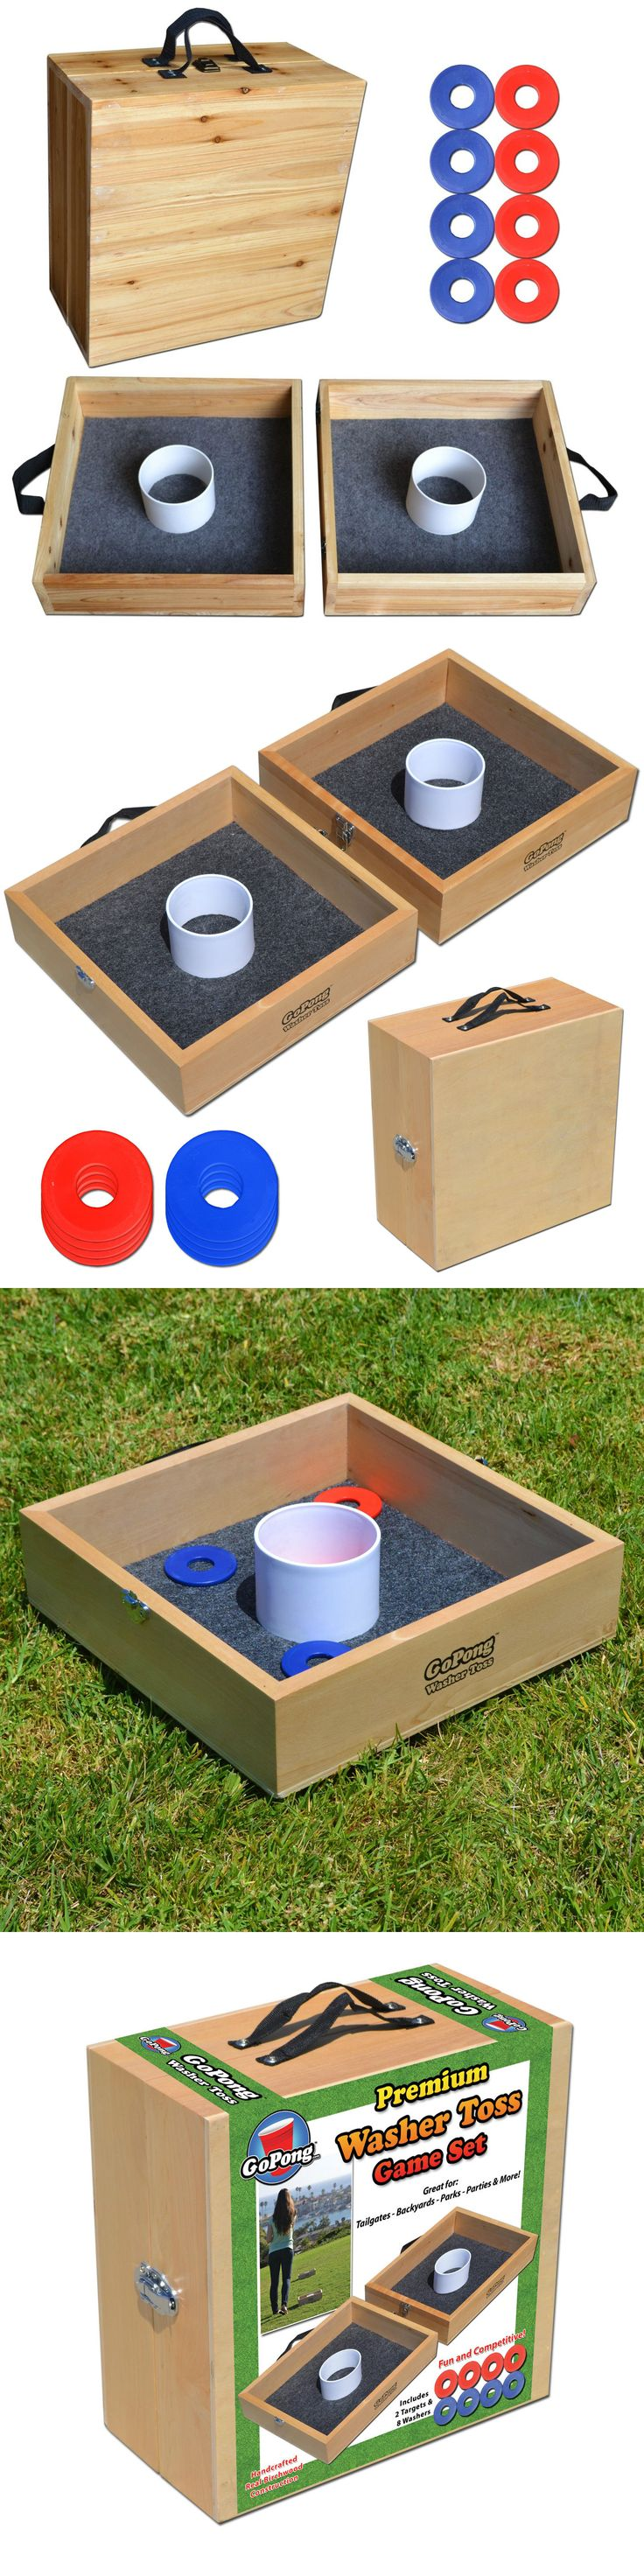 Other Backyard Games 159081: Premium Wood Washer Toss Game (Birch Wood) BUY IT NOW ONLY: $49.99